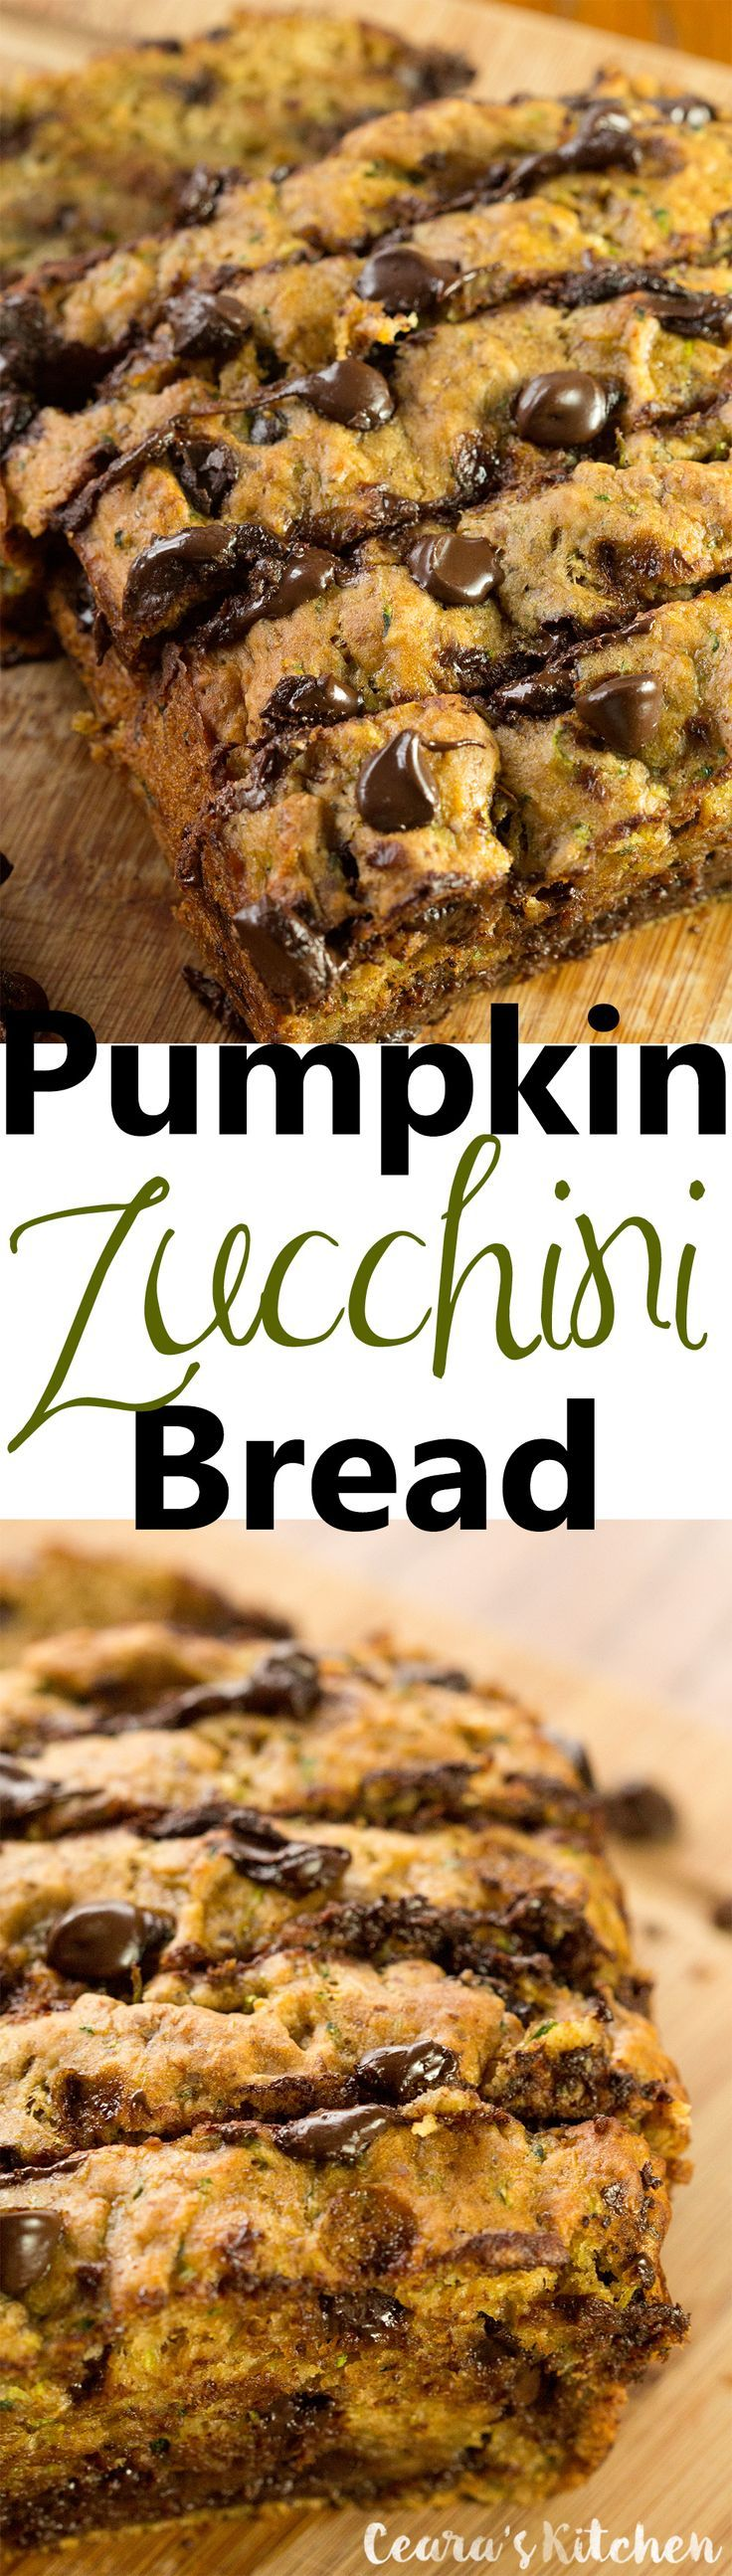 Chocolate Chip Pumpkin Zucchini Bread - SO incredibly moist + soft from the pumpkin + shredded zucchini PLUS filled with delicious pumpkin spices and melty chocolate chips! #vegan #fall #pumpkin #pumpkinbread